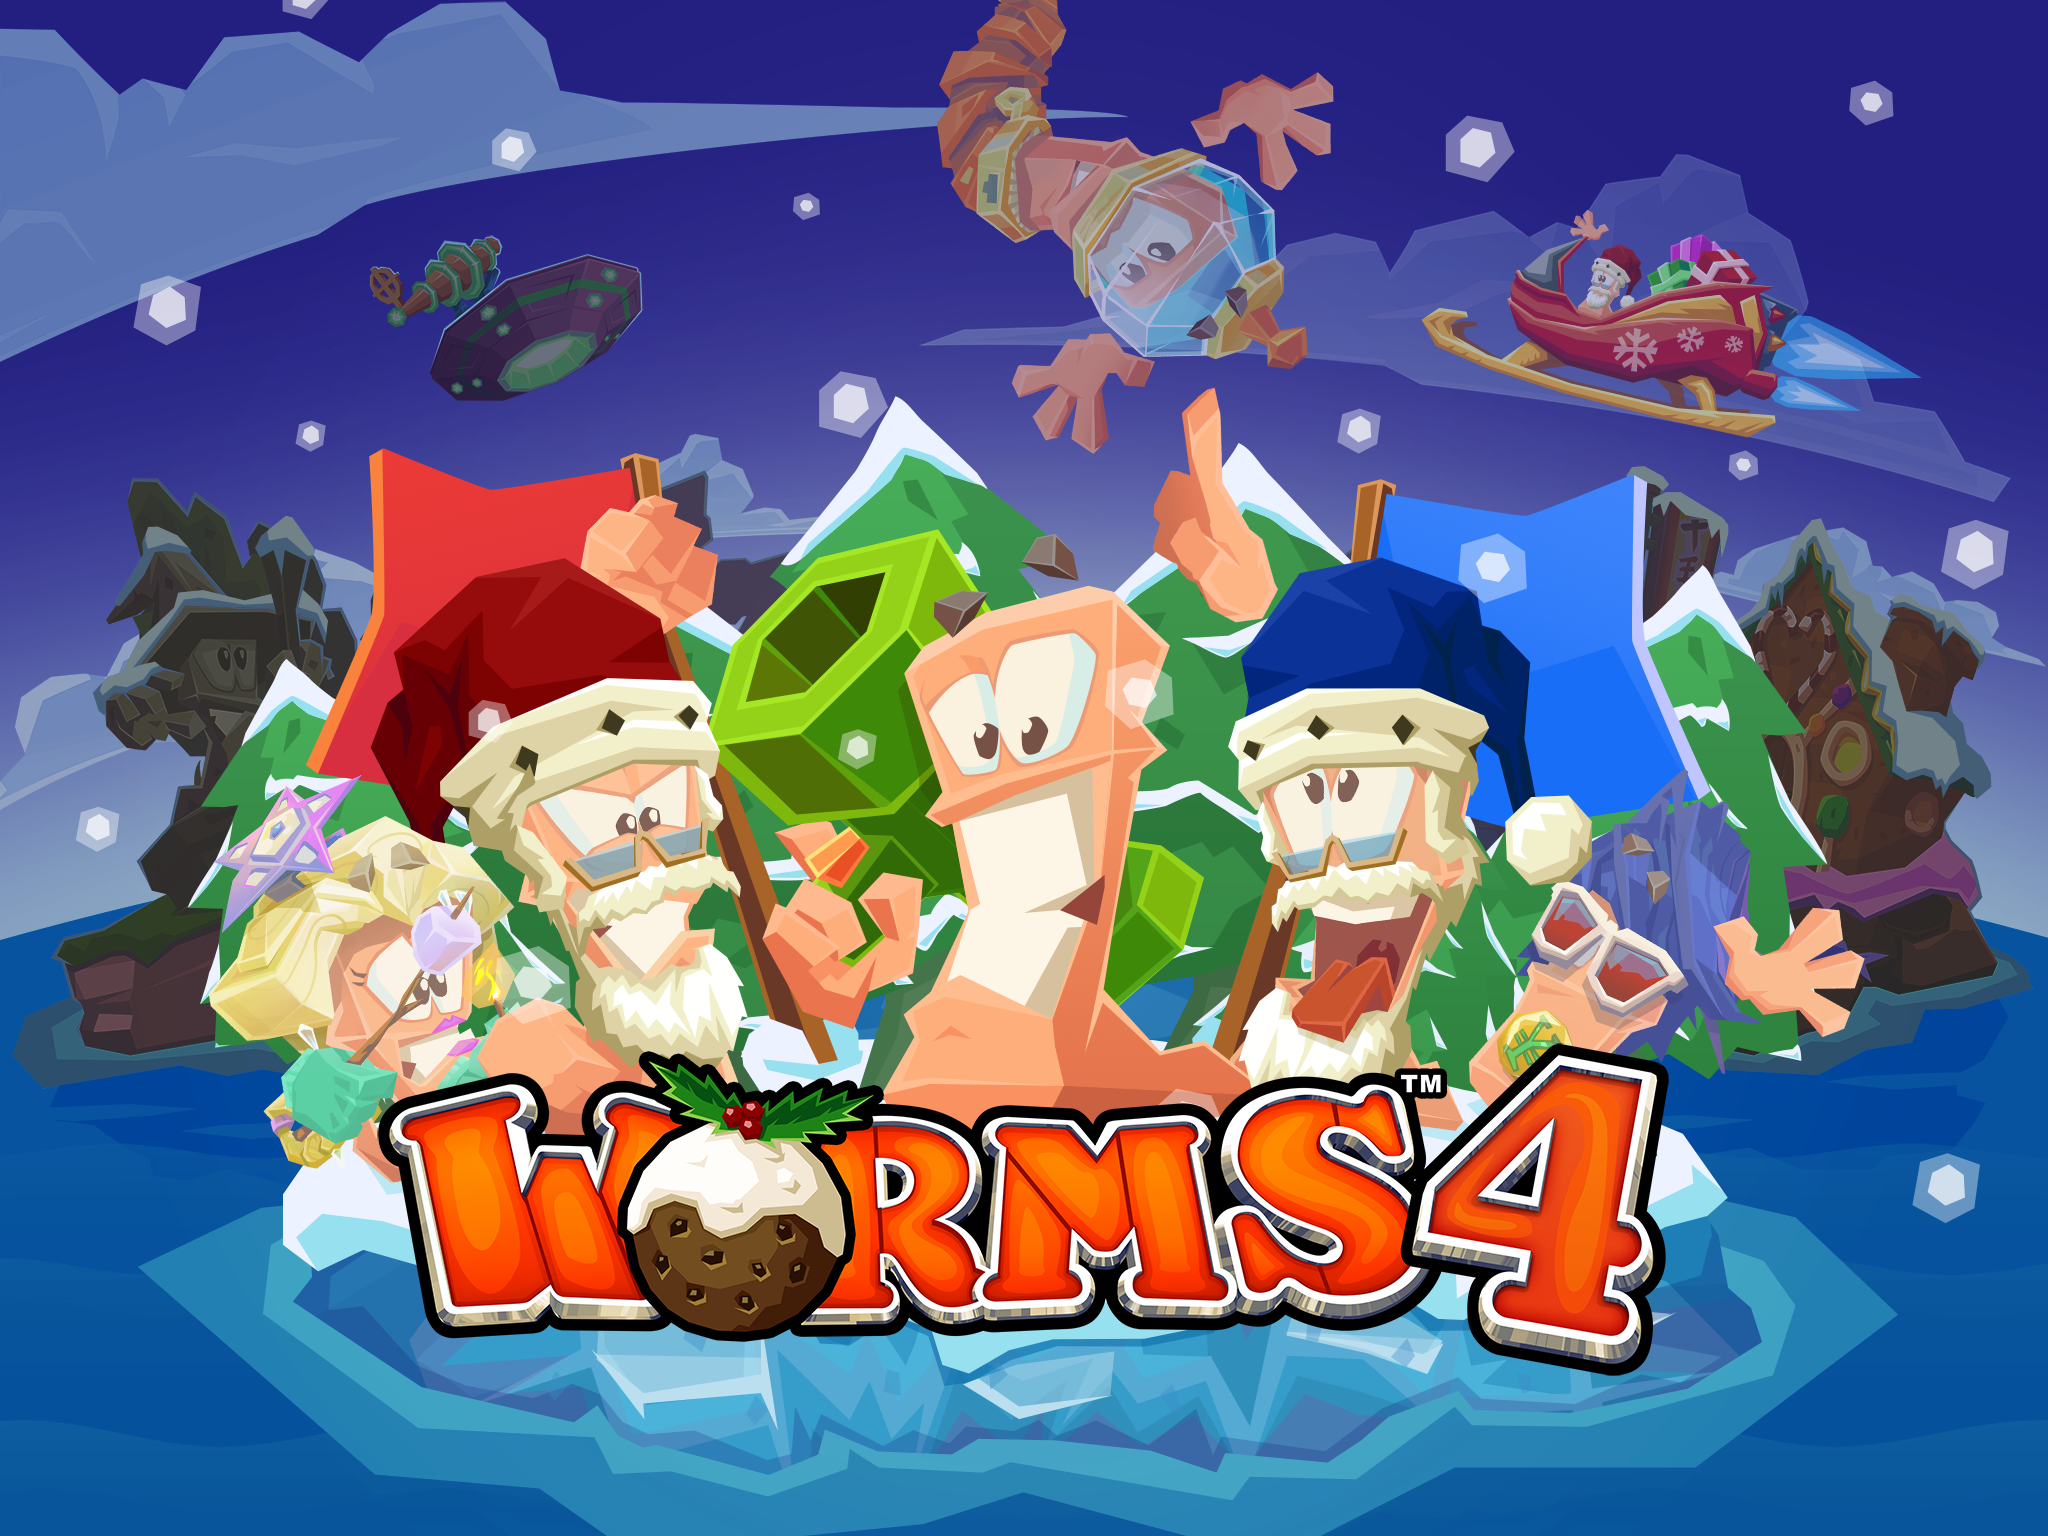 Worms 4 gets into the festive spirit with new content and 50% discount!